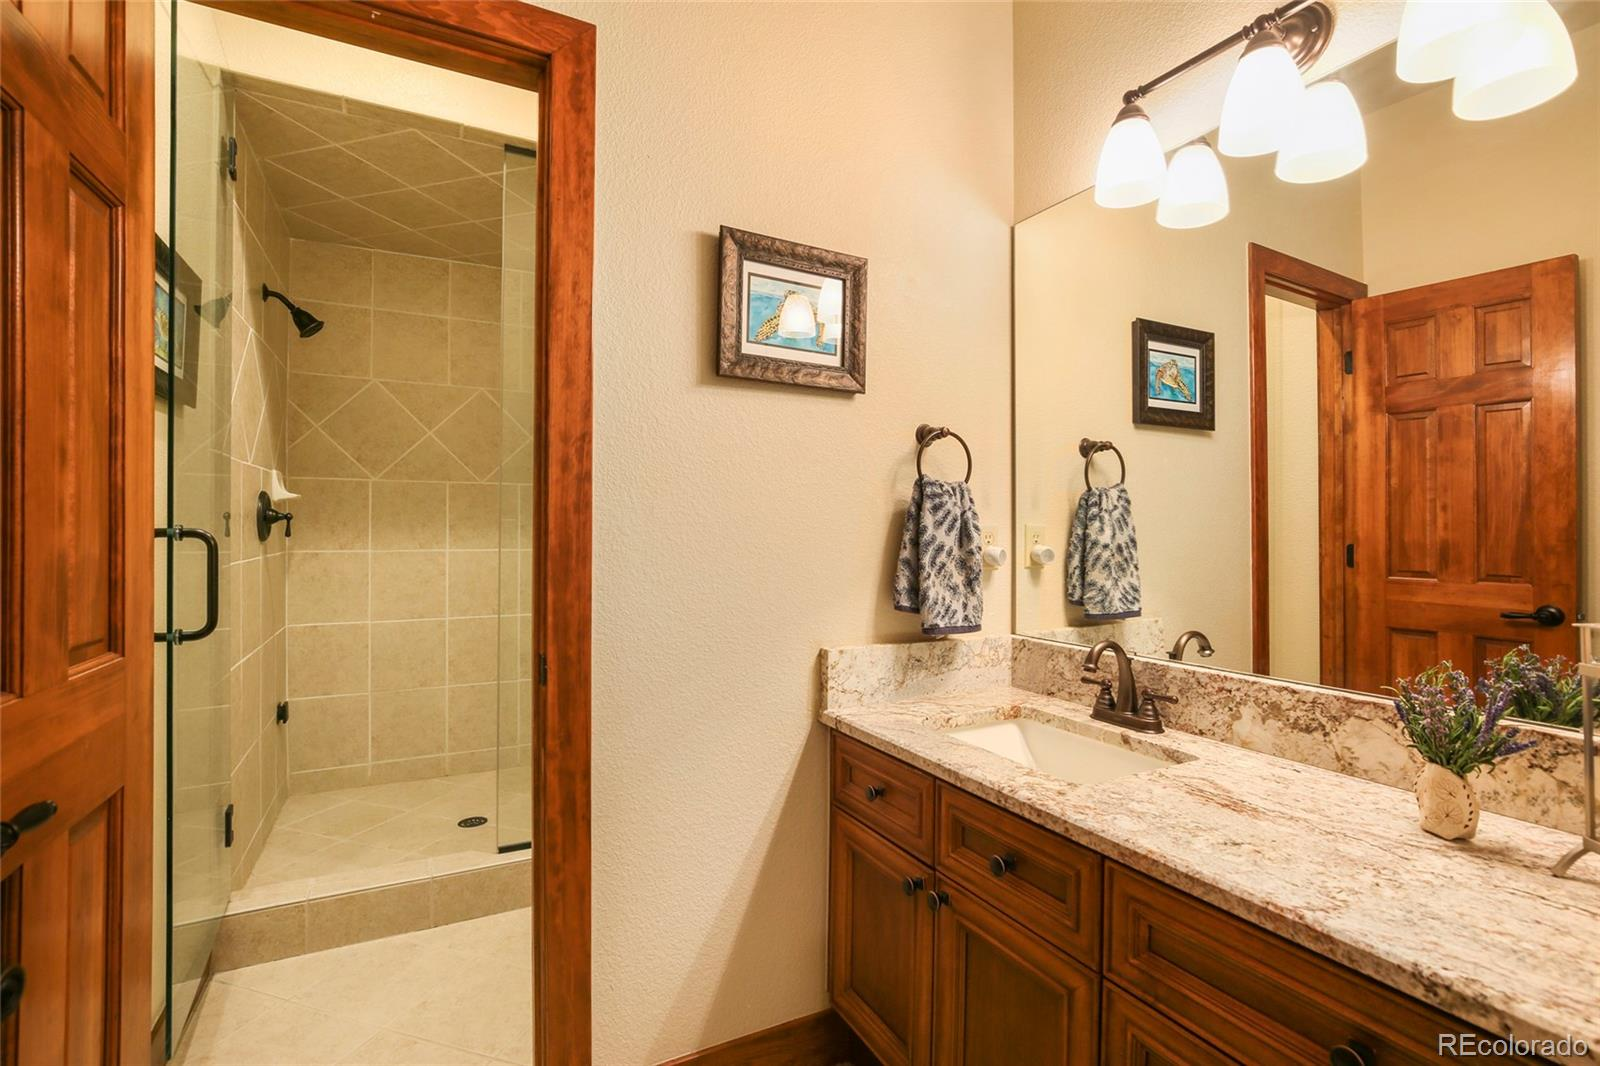 MLS# 8150320 - 30 - 1198 Forest Trails Drive, Castle Pines, CO 80108